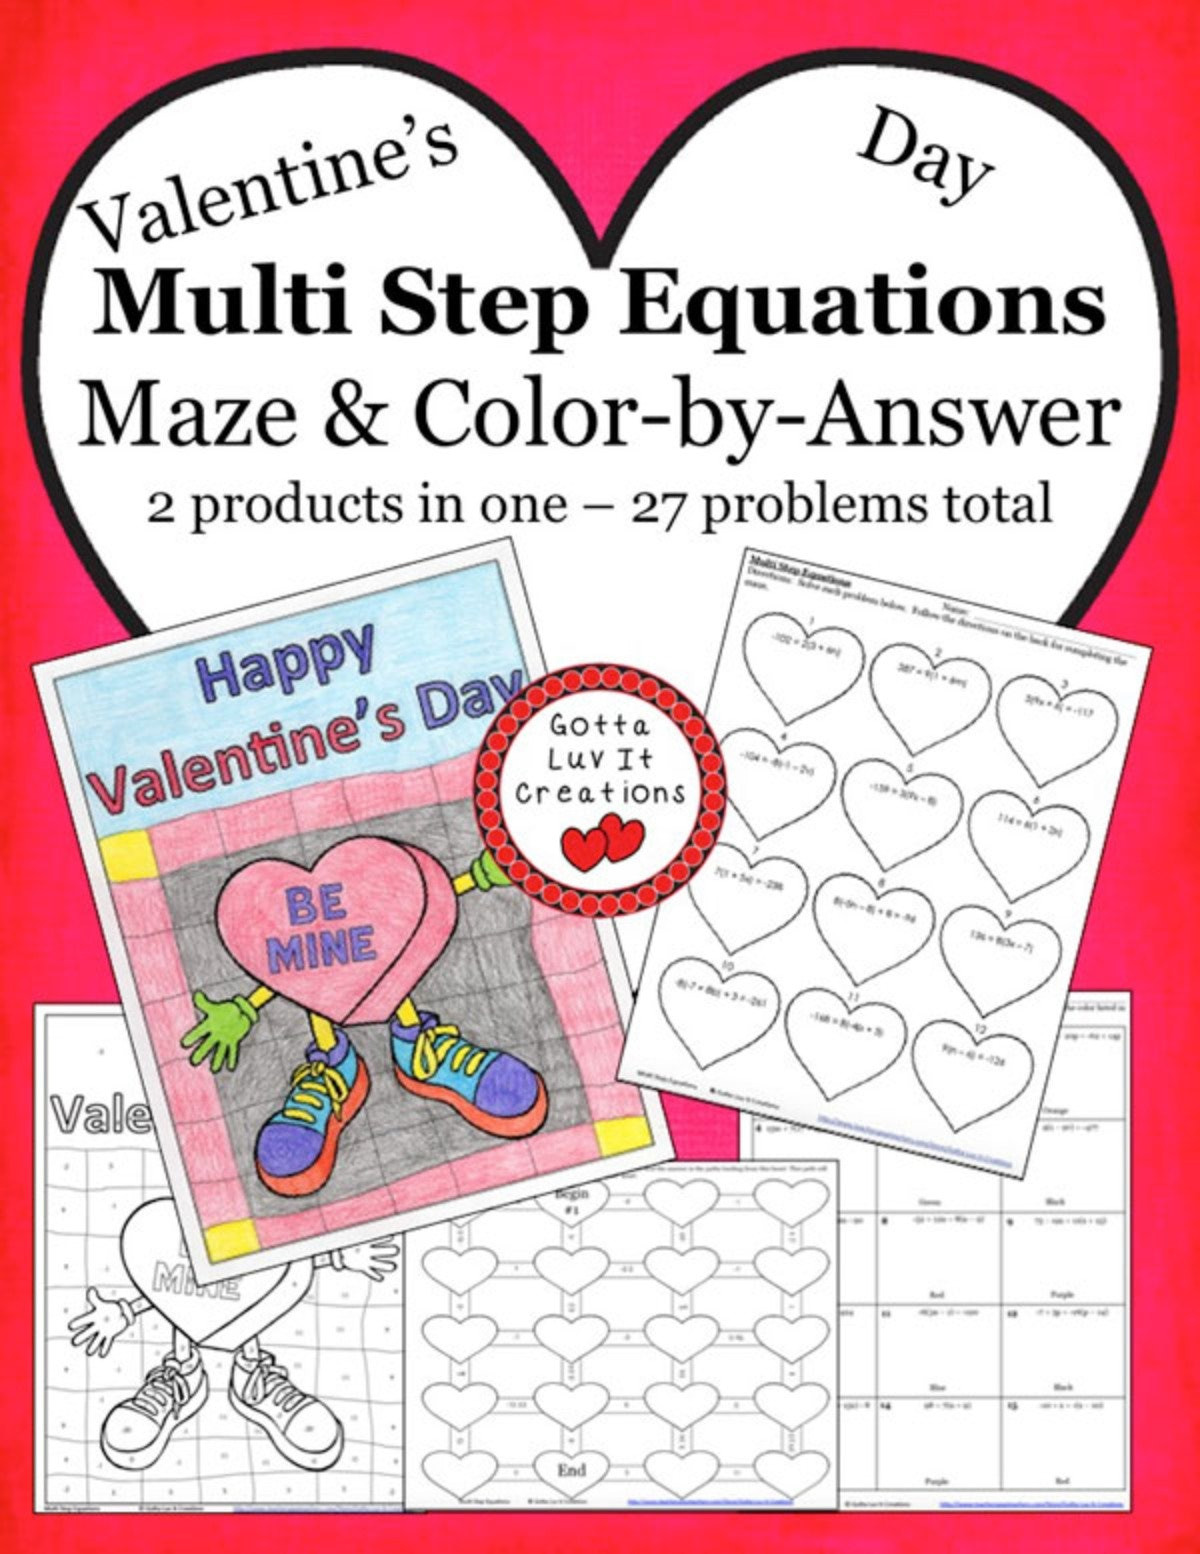 Two Step Equations Coloring Worksheet Valentine S Day Multi Step Equations Maze & Color by Answer